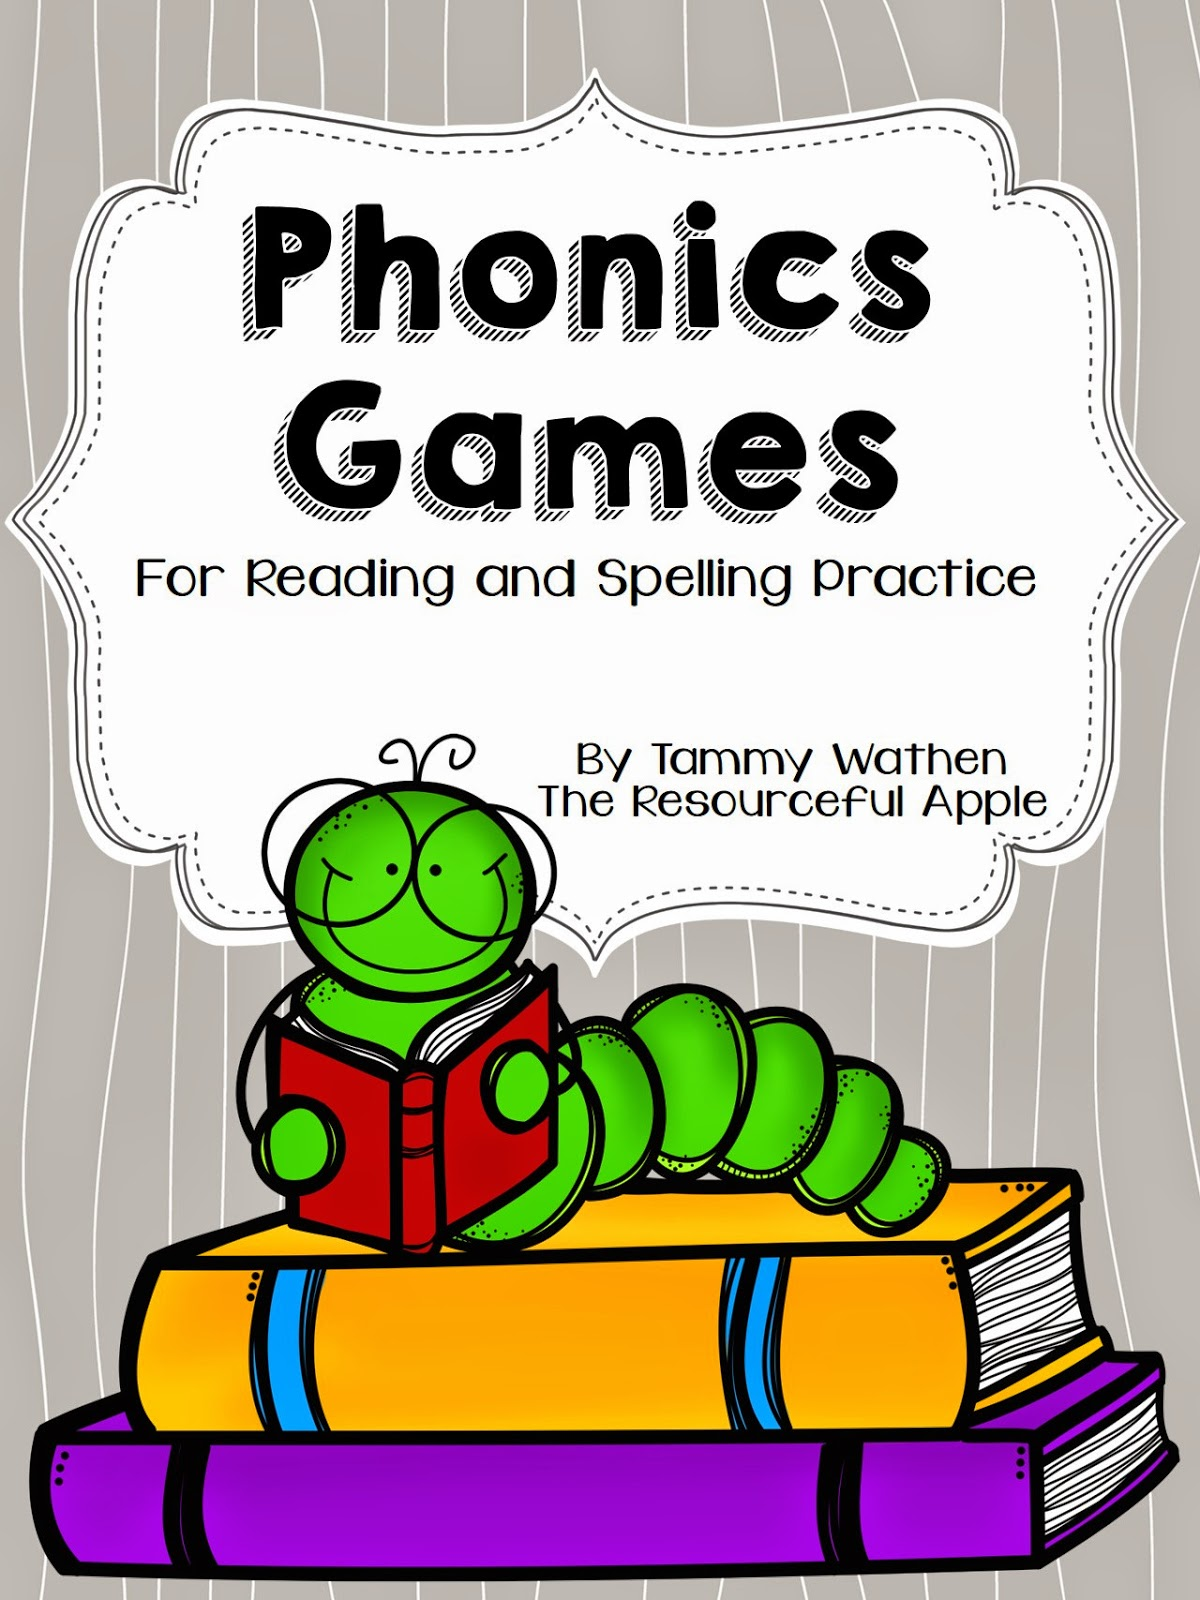 http://www.teacherspayteachers.com/Product/Phonics-Games-For-Reading-and-Spelling-Practice-1368815